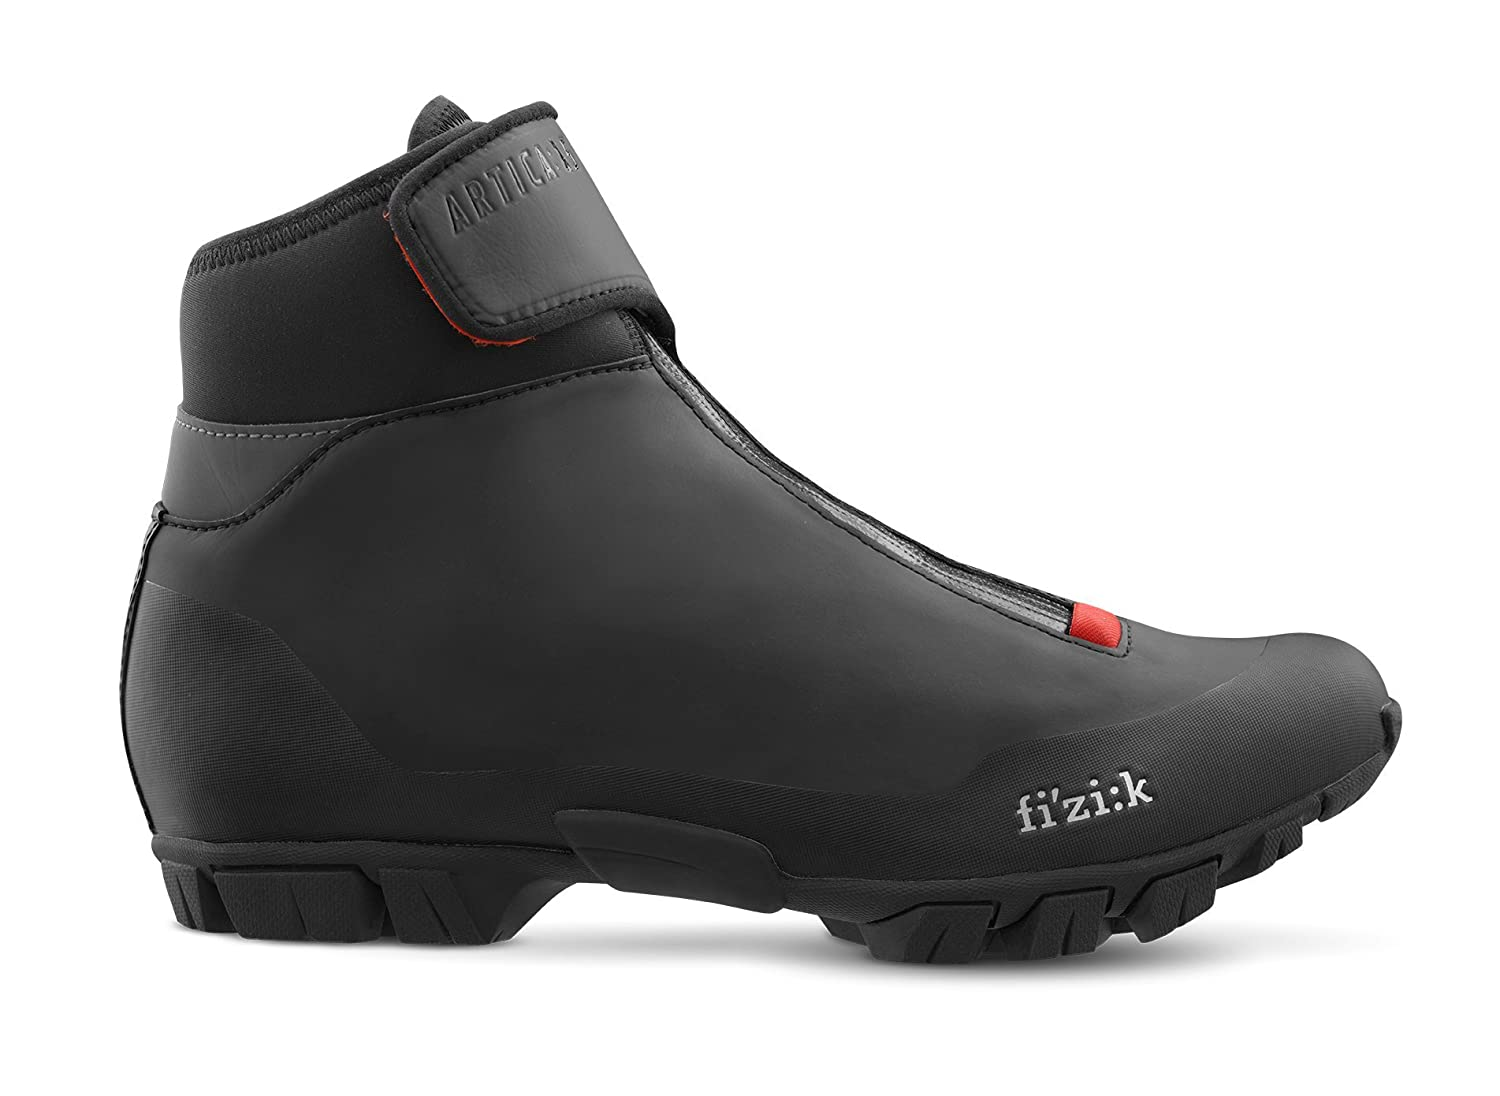 Fizik X5 Artica Cycling Shoe - Men's B077J9V945 44.5 EU|Black